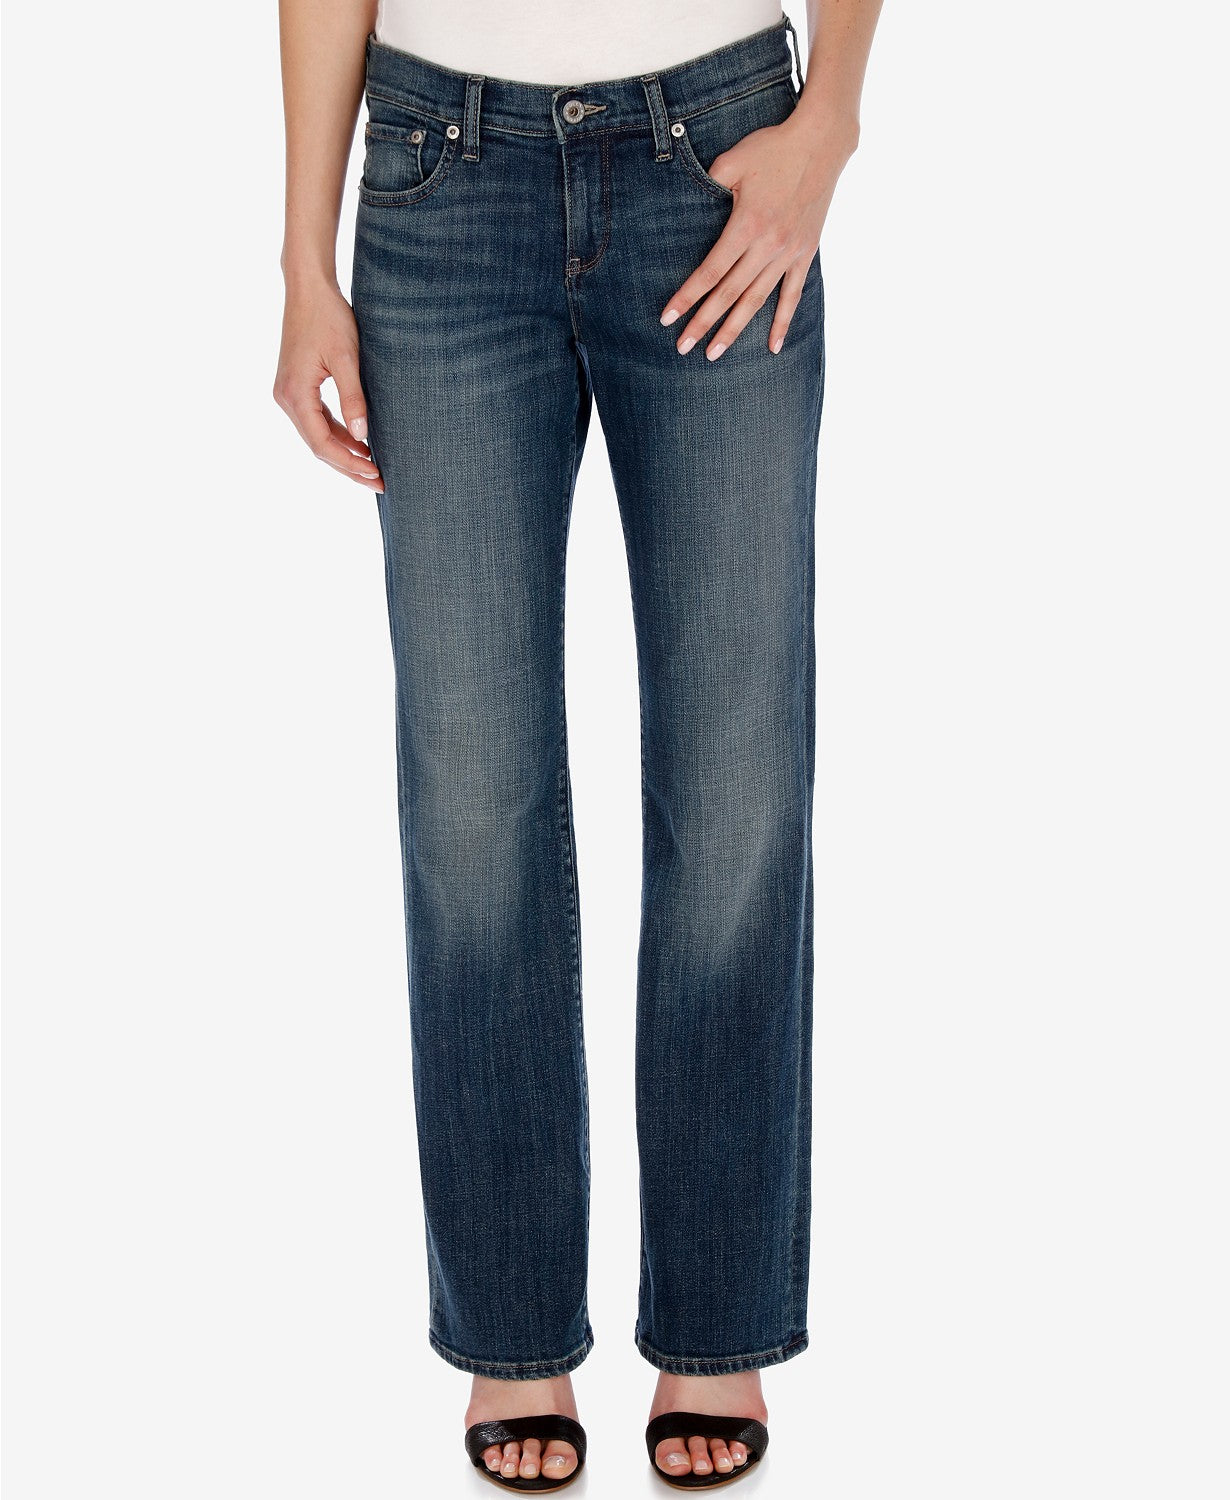 Lucky Brand Easy Rider Bootcut Jeans Artesia 27 X 32